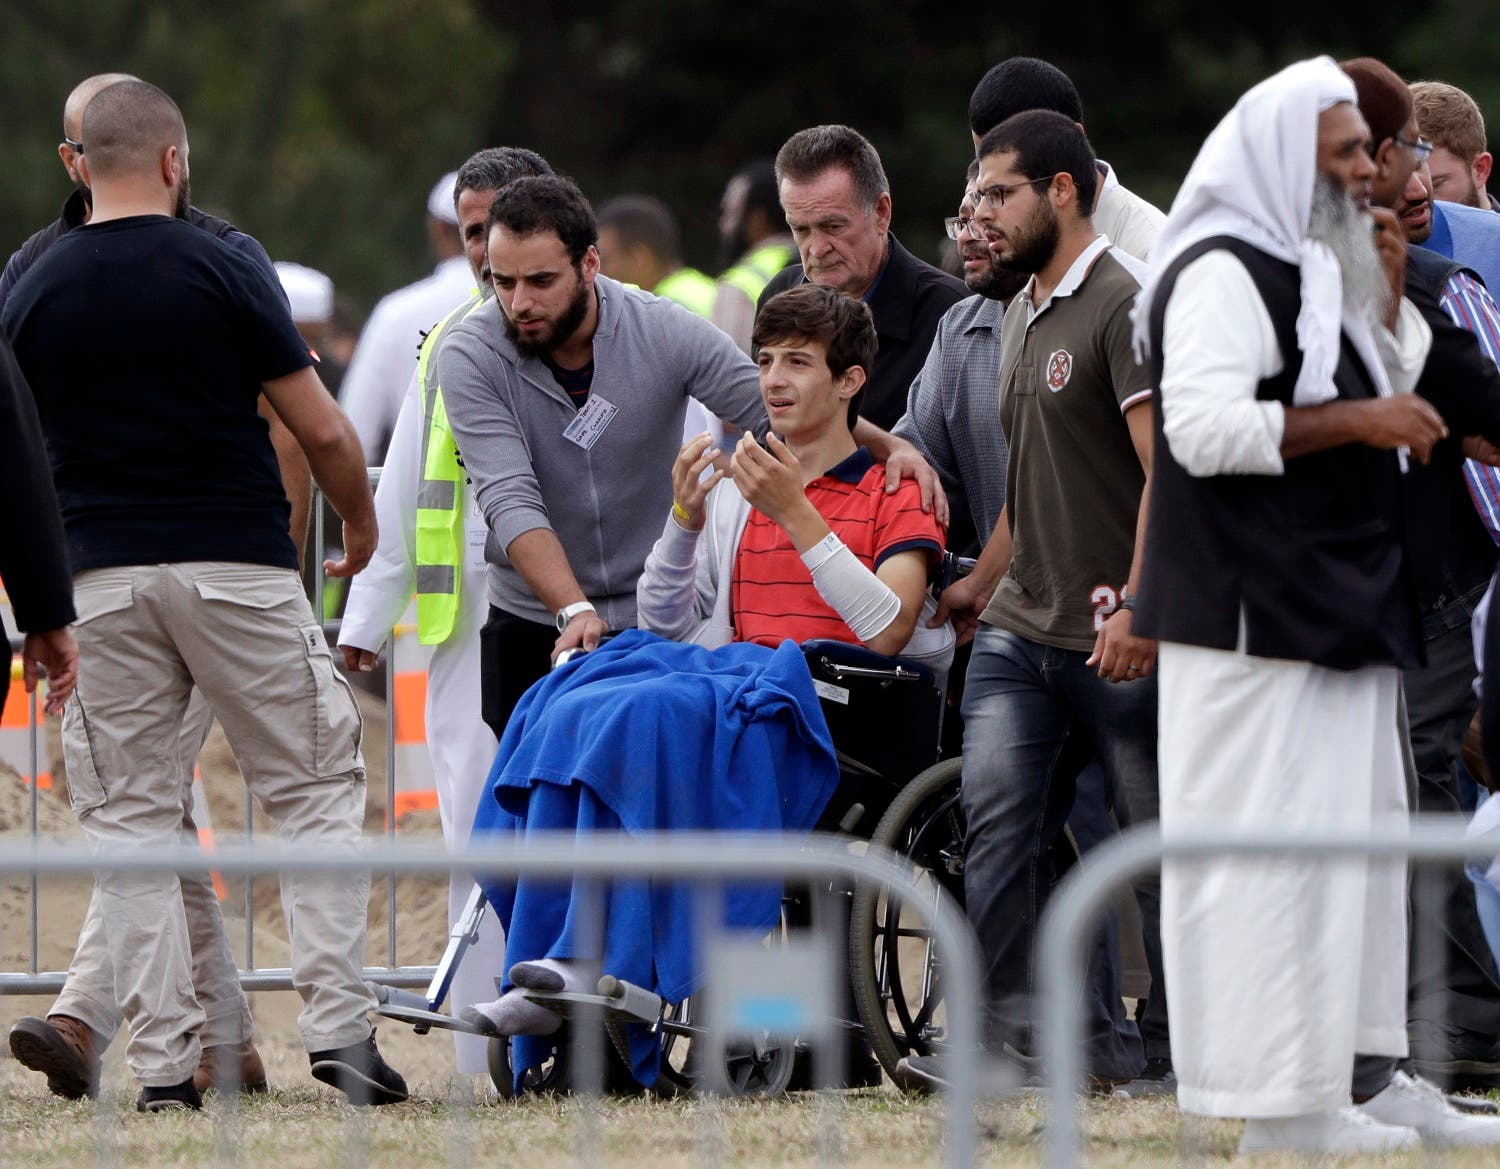 Zaed Mustafa, in wheelchair, during the burial at the Memorial Park Cemetery in Christchurch on March 20, 2019. (AP)